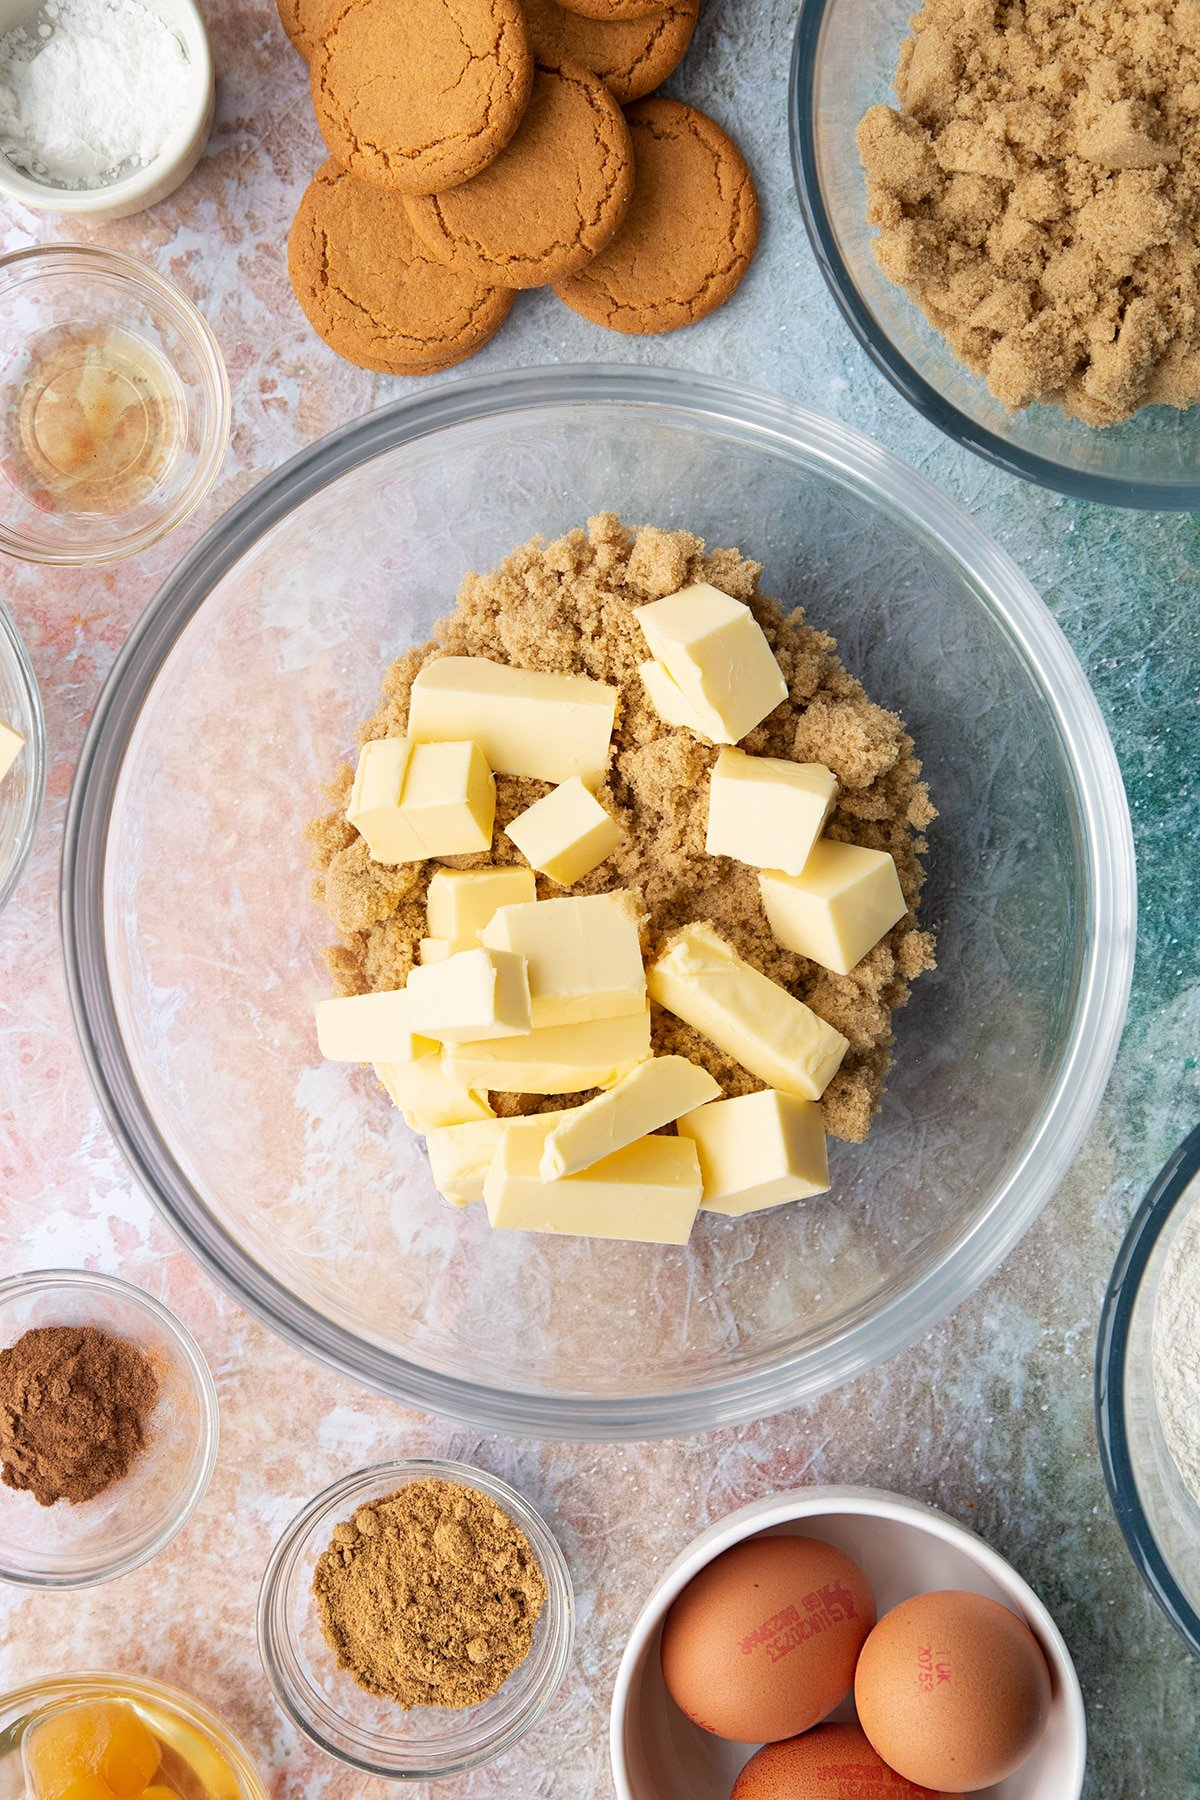 Butter and soft light brown sugar in a mixing bowl. Ingredients to make ginger cupcakes surround the bowl.